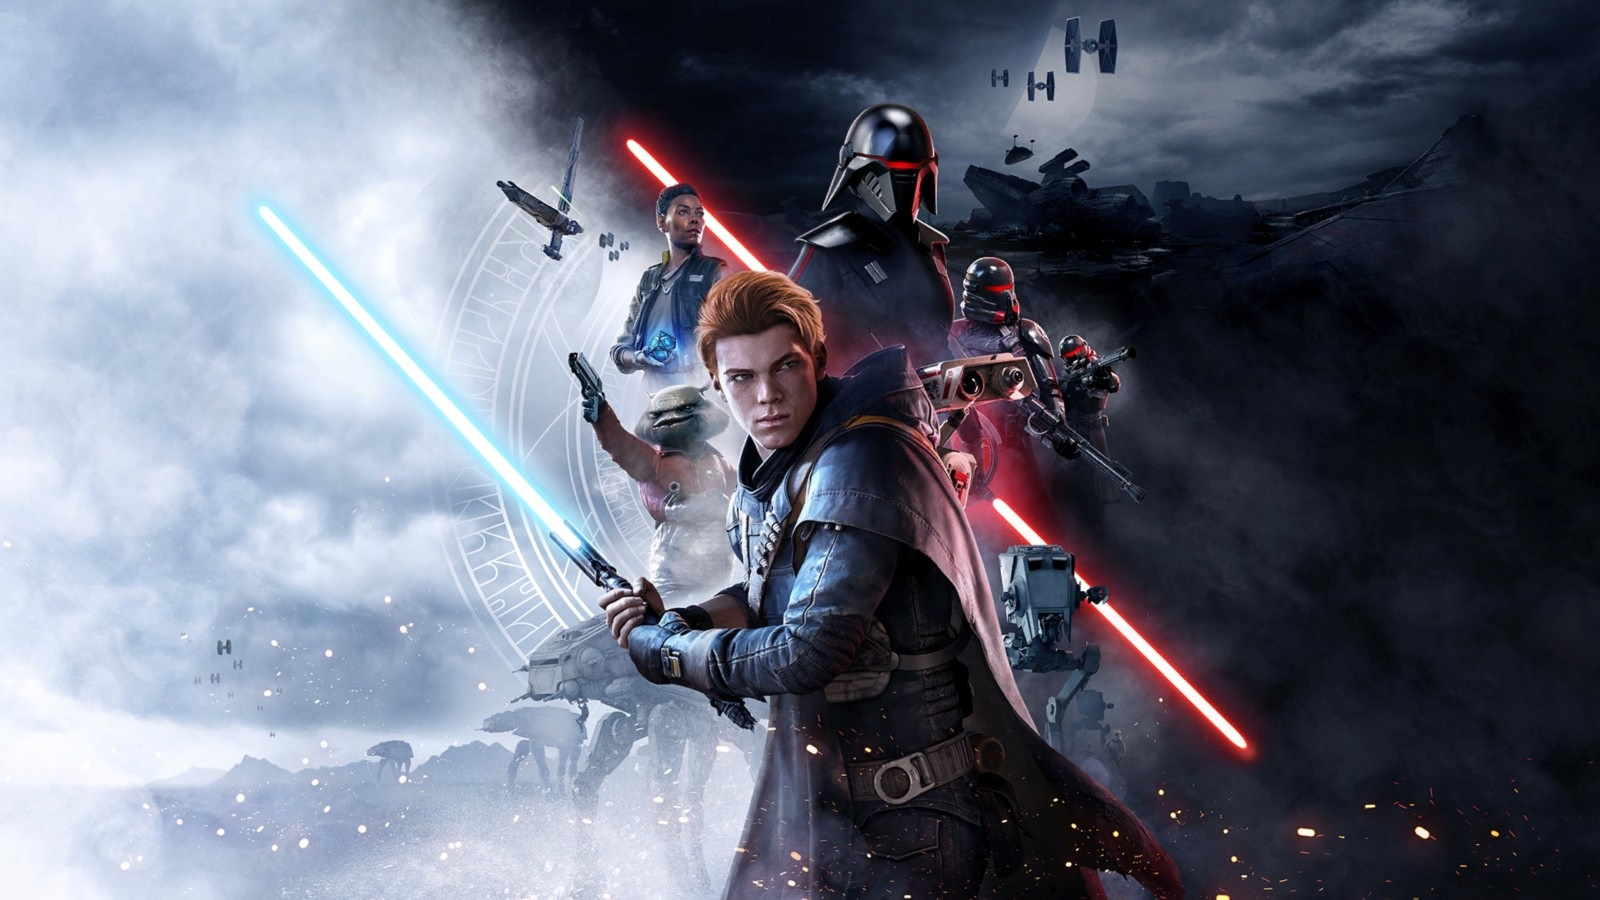 Star Wars Jedi: Fallen Order Adventure PC Game